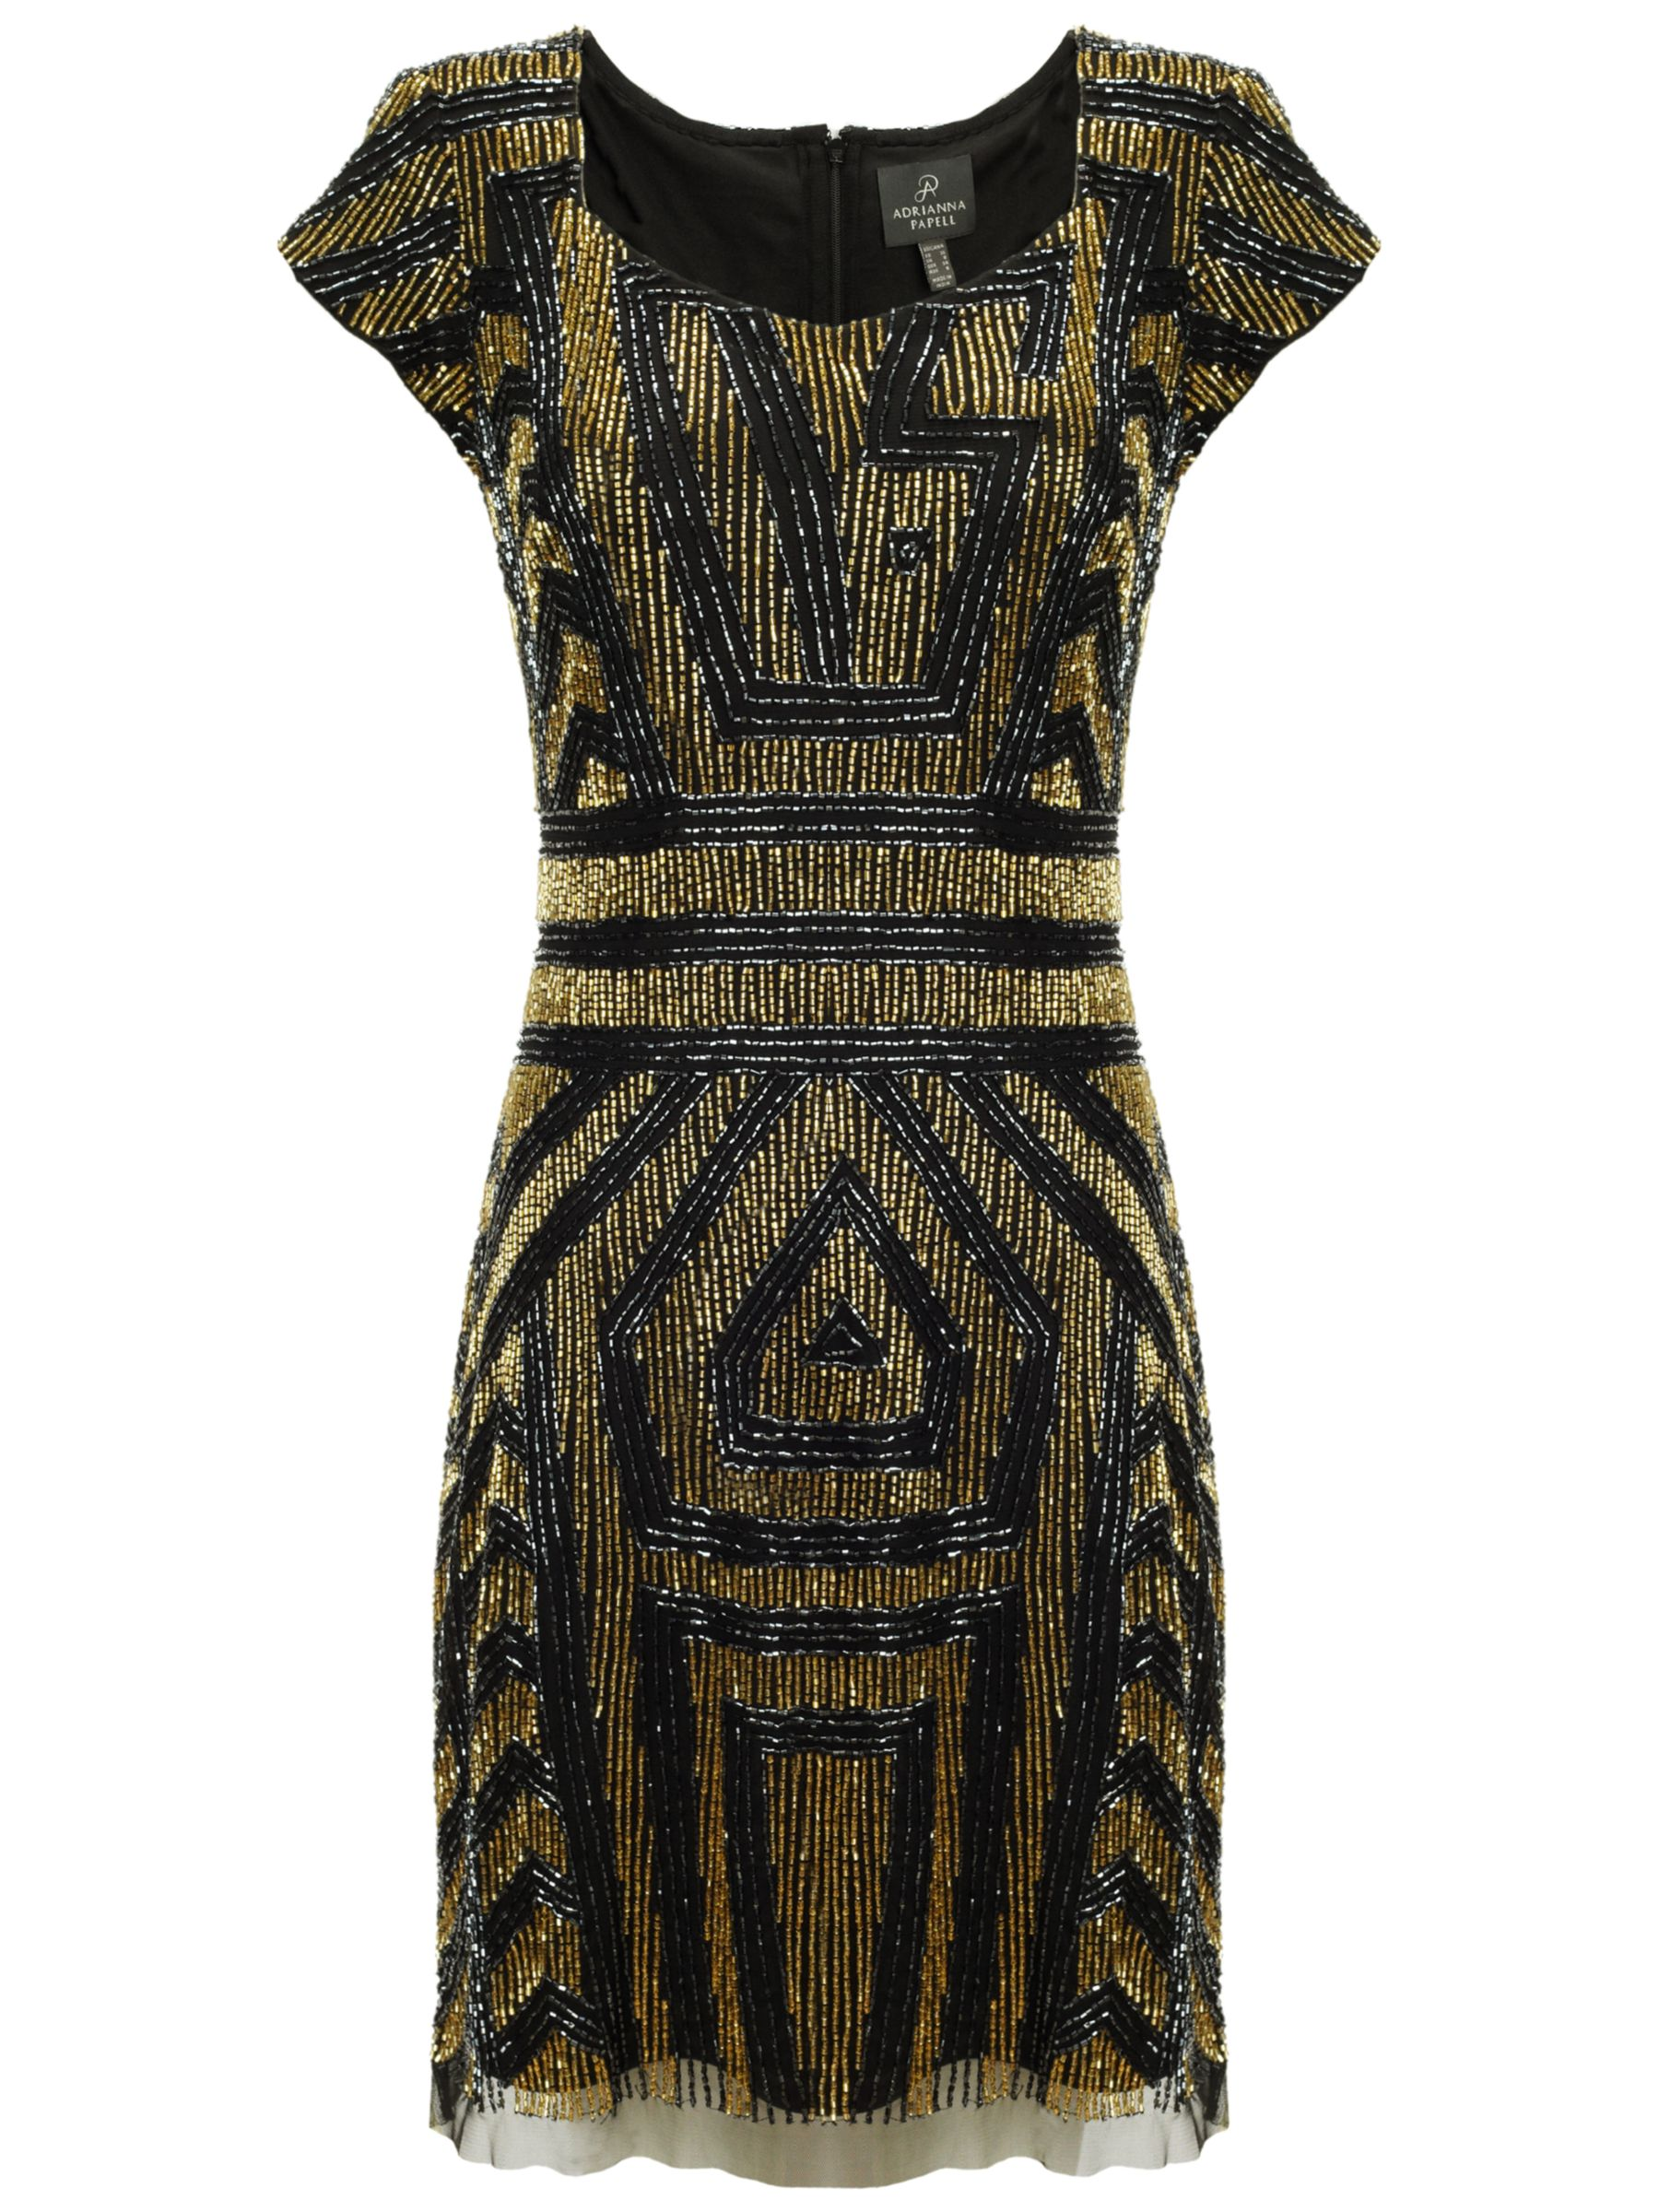 adrianna papell beaded cap sleeve dress black/gold, adrianna, papell, beaded, cap, sleeve, dress, black/gold, adrianna papell, clearance, womenswear offers, womens dresses offers, new years party offers, women, plus size, inactive womenswear, new reductions, brands a-k, womens dresses, special offers, edition magazine, embellishment, eveningwear offers, 1741187